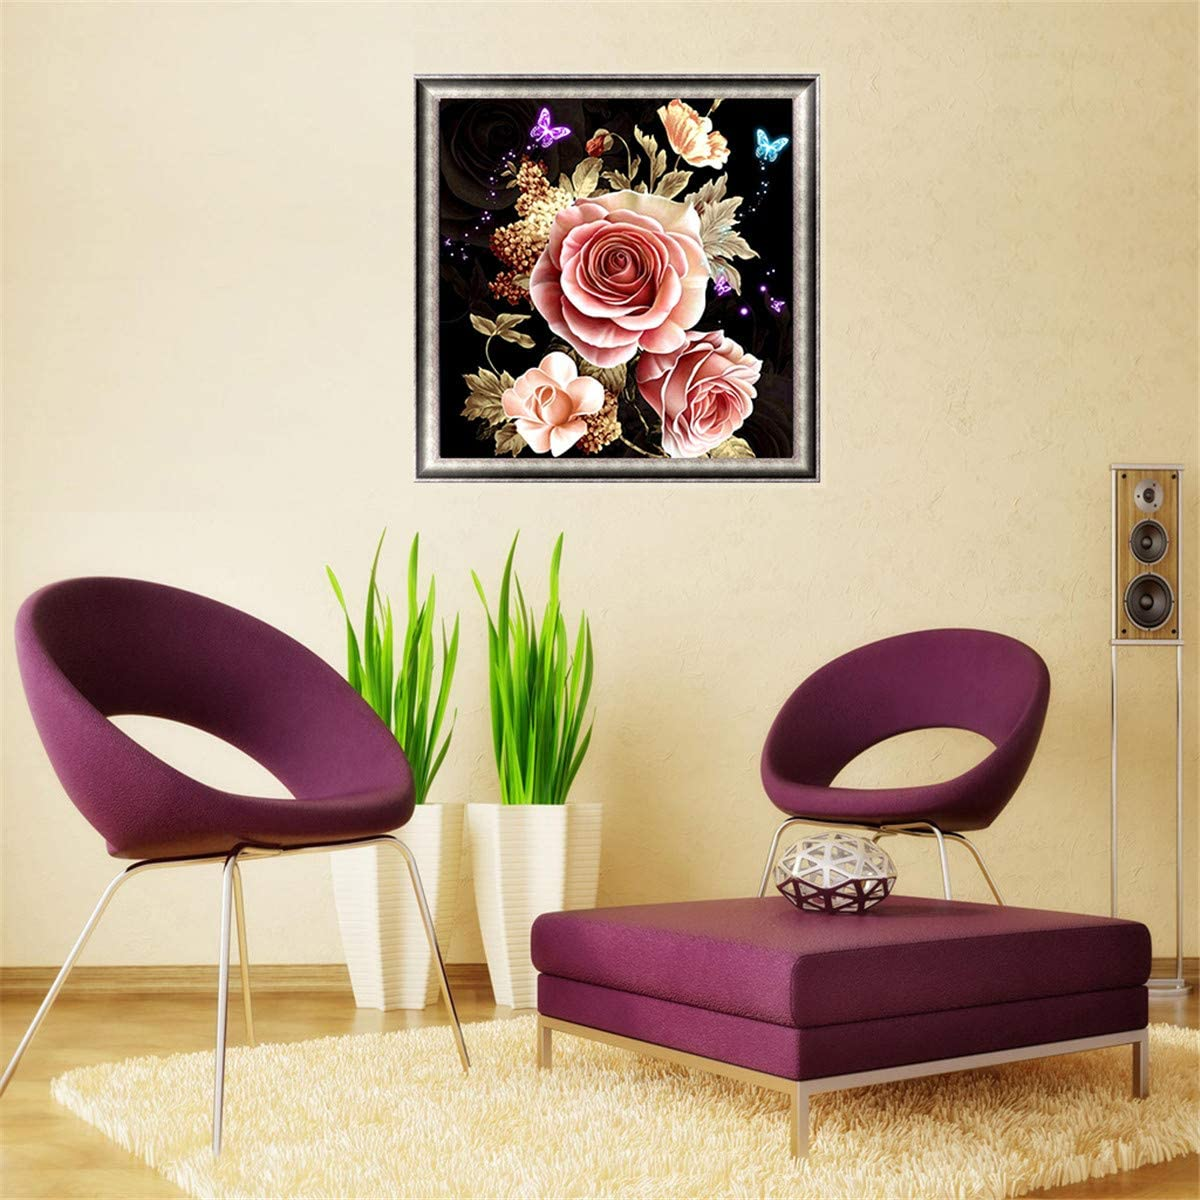 DIY Full Drill Flower Cross Stitch Embroidery Rhinestone Picture Craft Arts for Home Wall Decor 12x12inch 5D Diamond Painting Kits